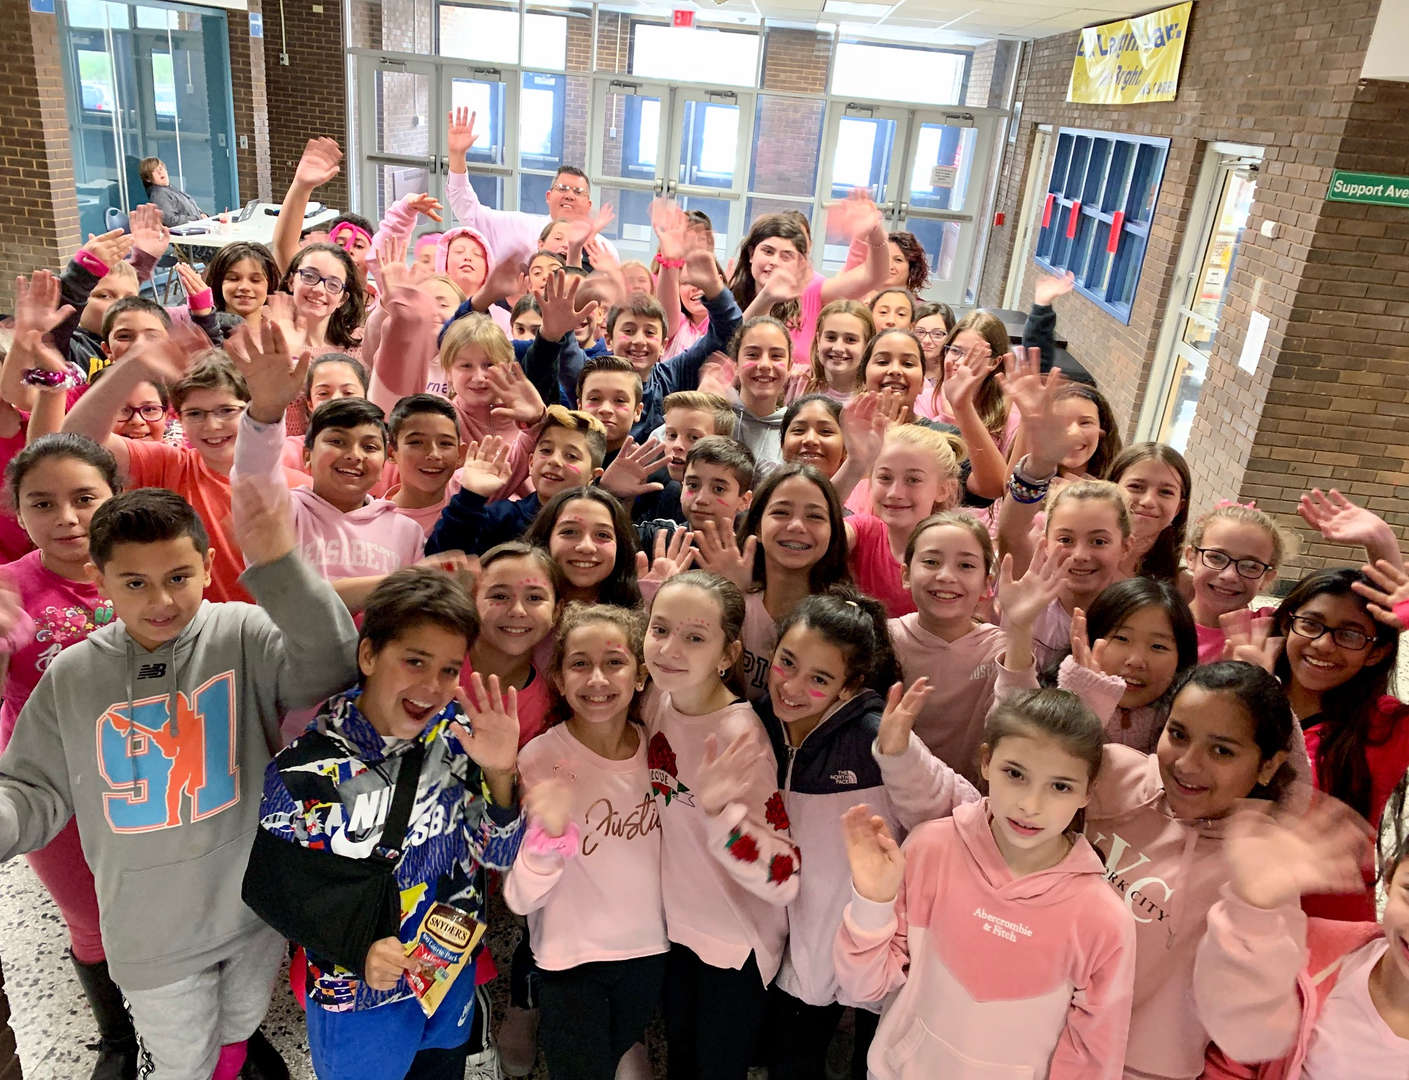 Principal Tom Cozzocrea gather in the school lobby dressed in pink.